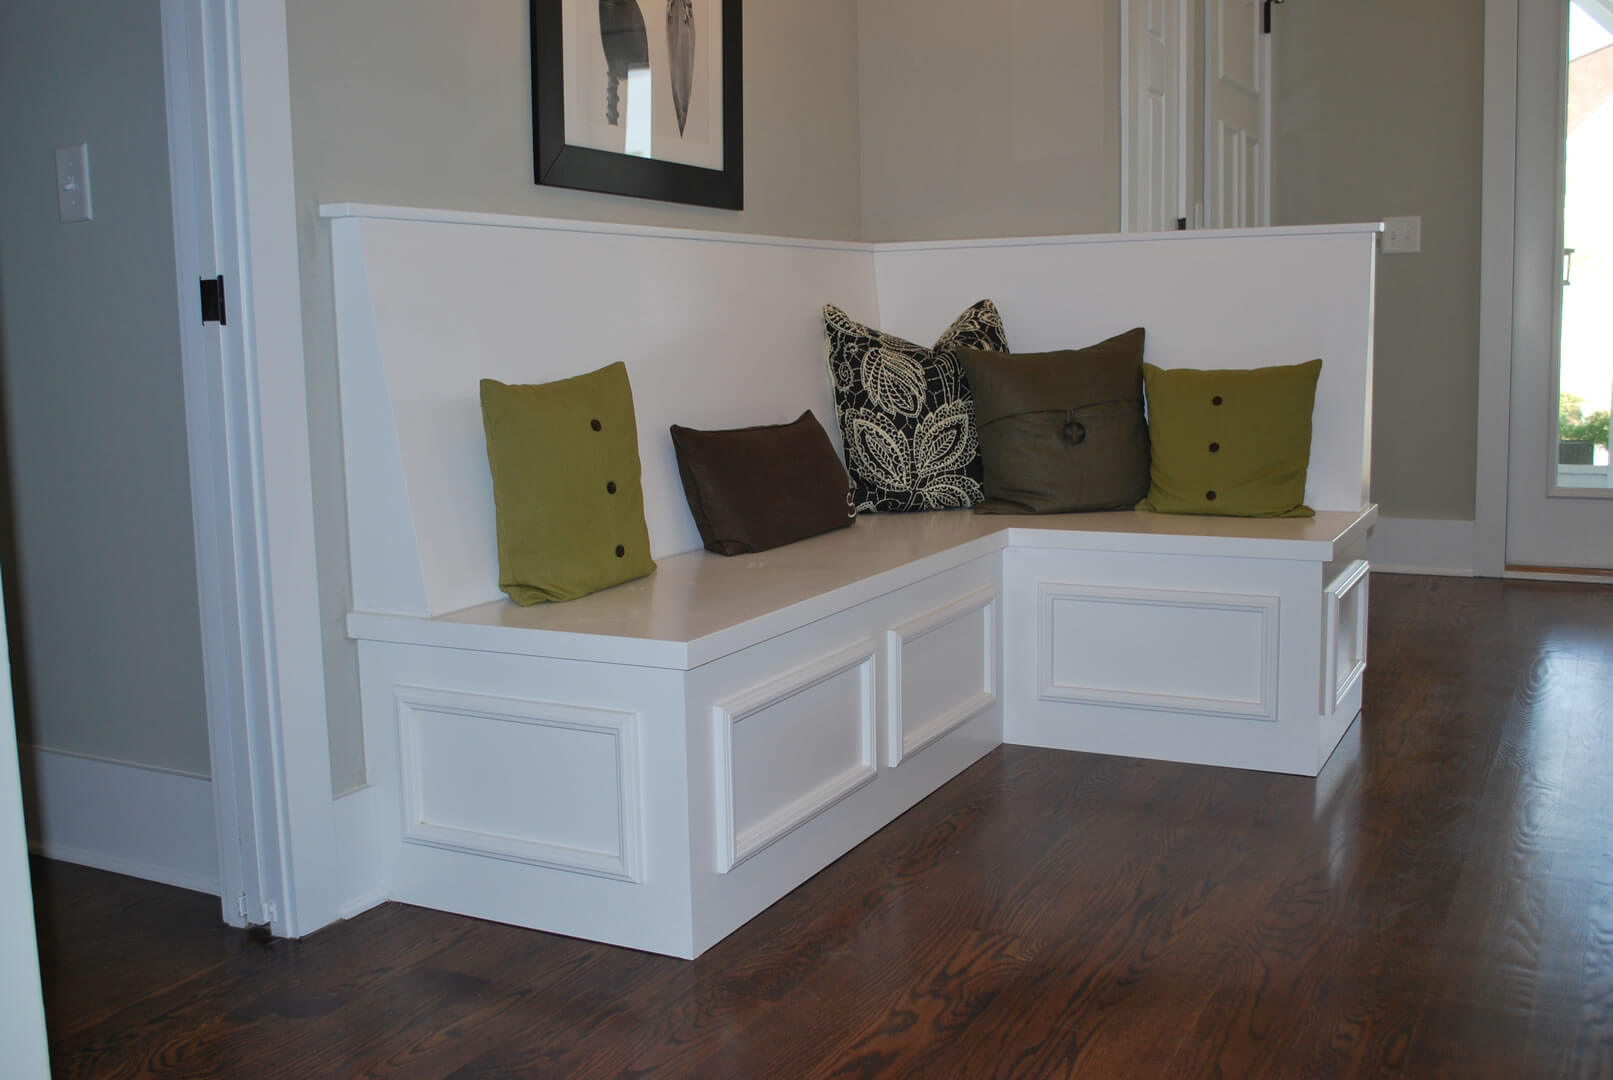 Banquettes & Benches